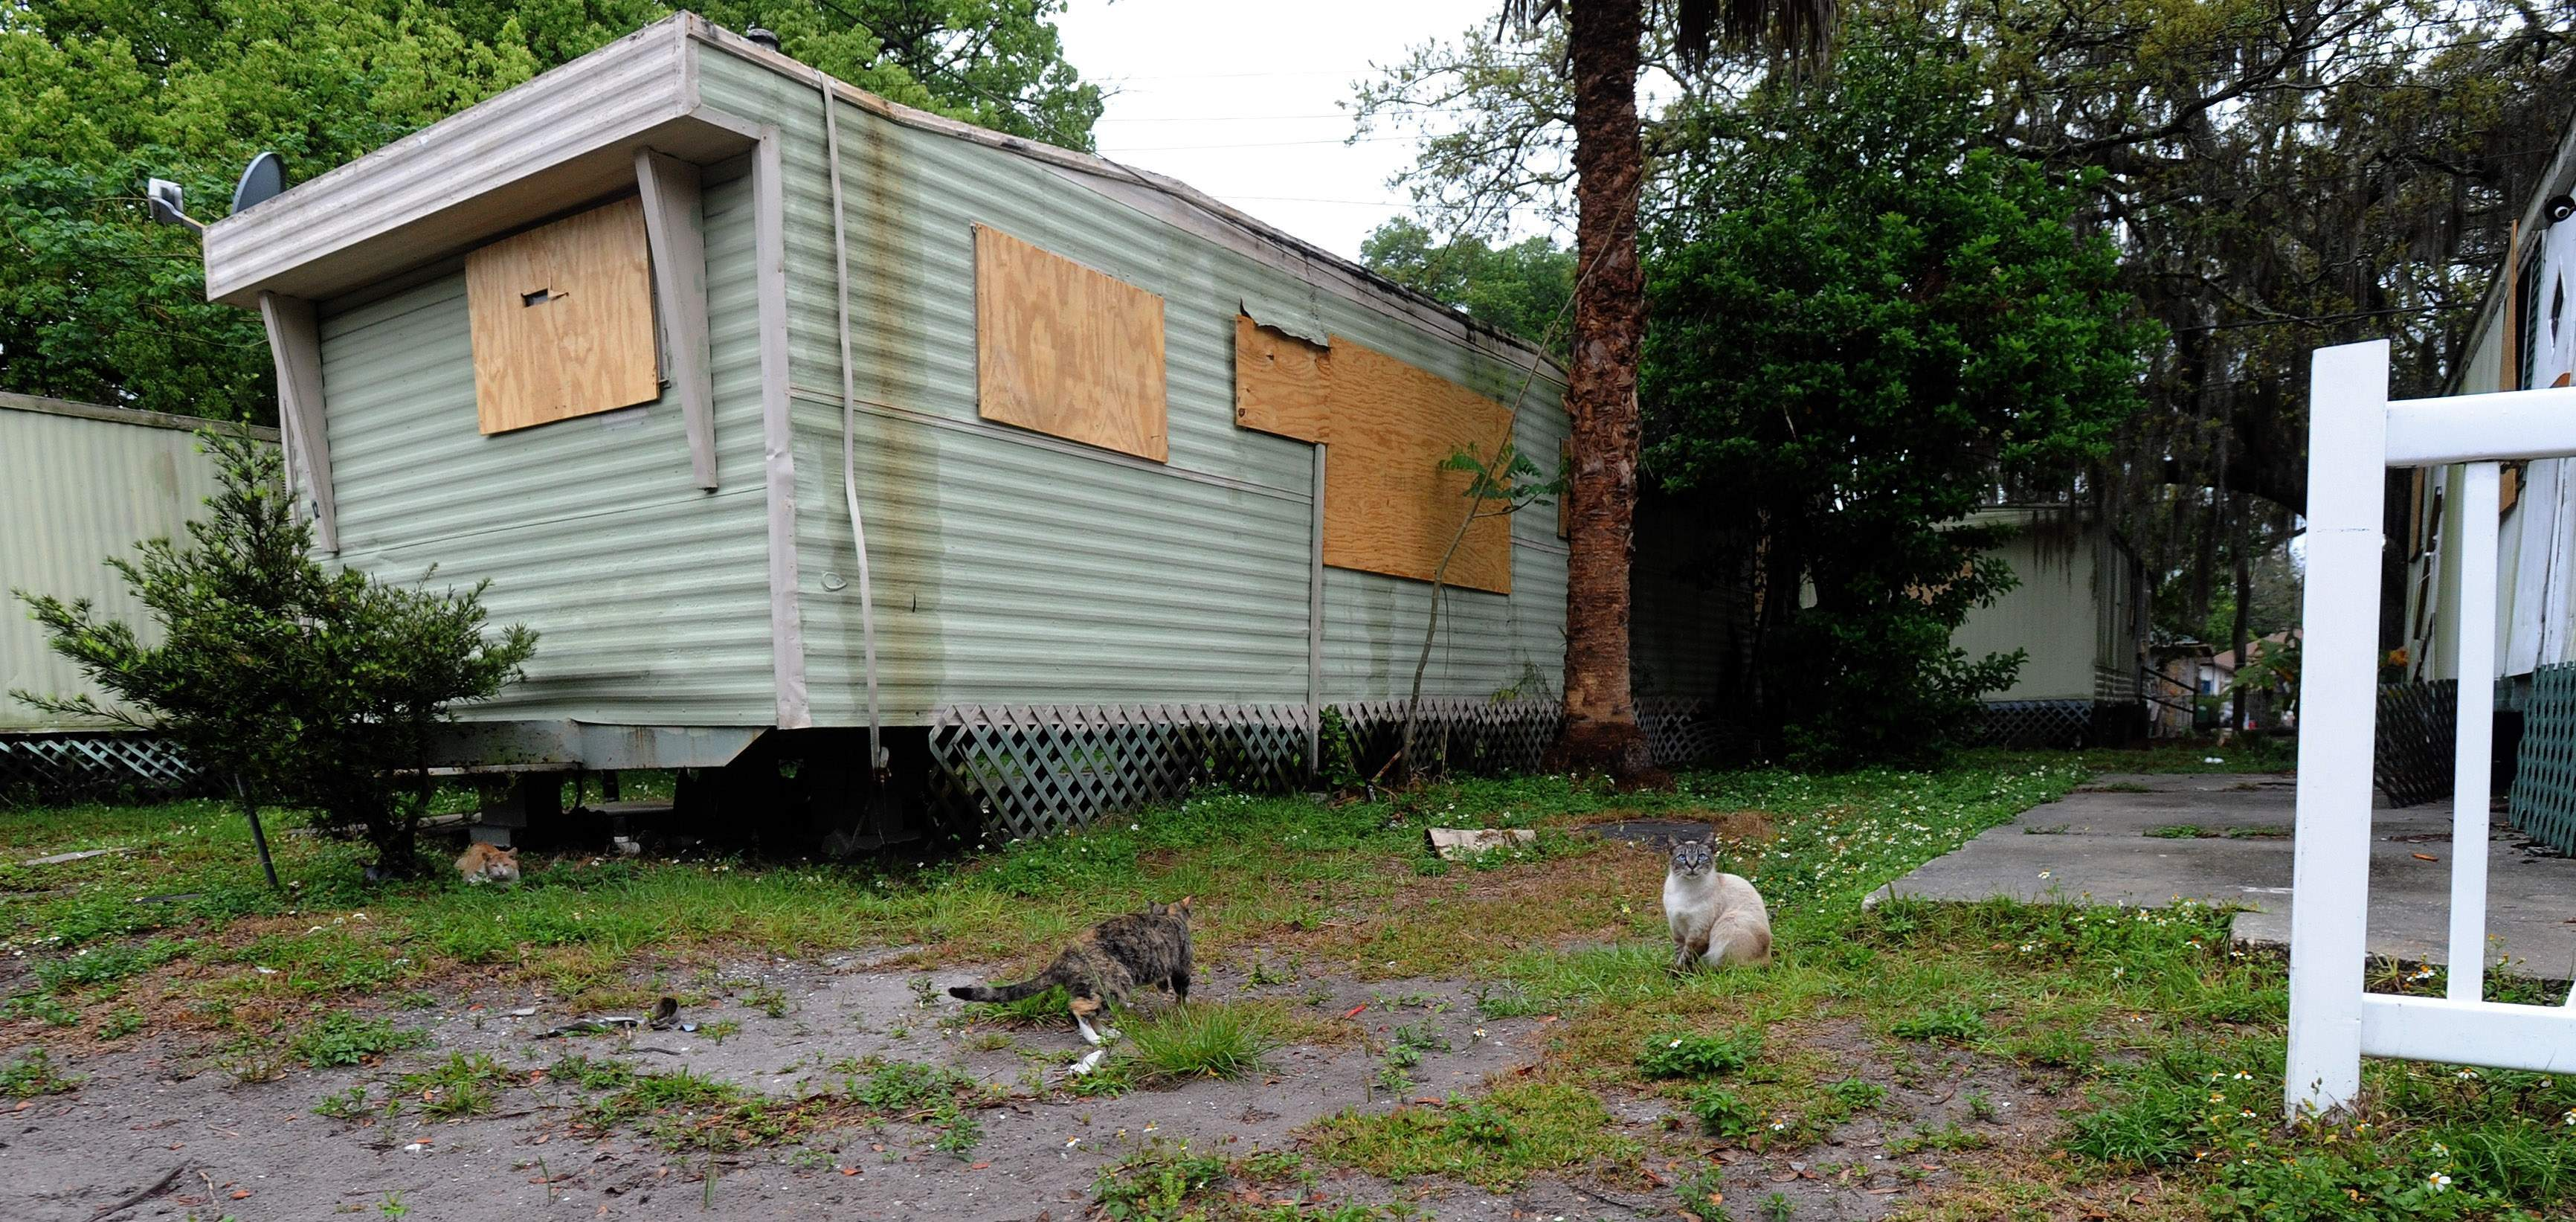 City Of Tampa Mobile Home Park Owner Face Off Over 13M In Code Violations